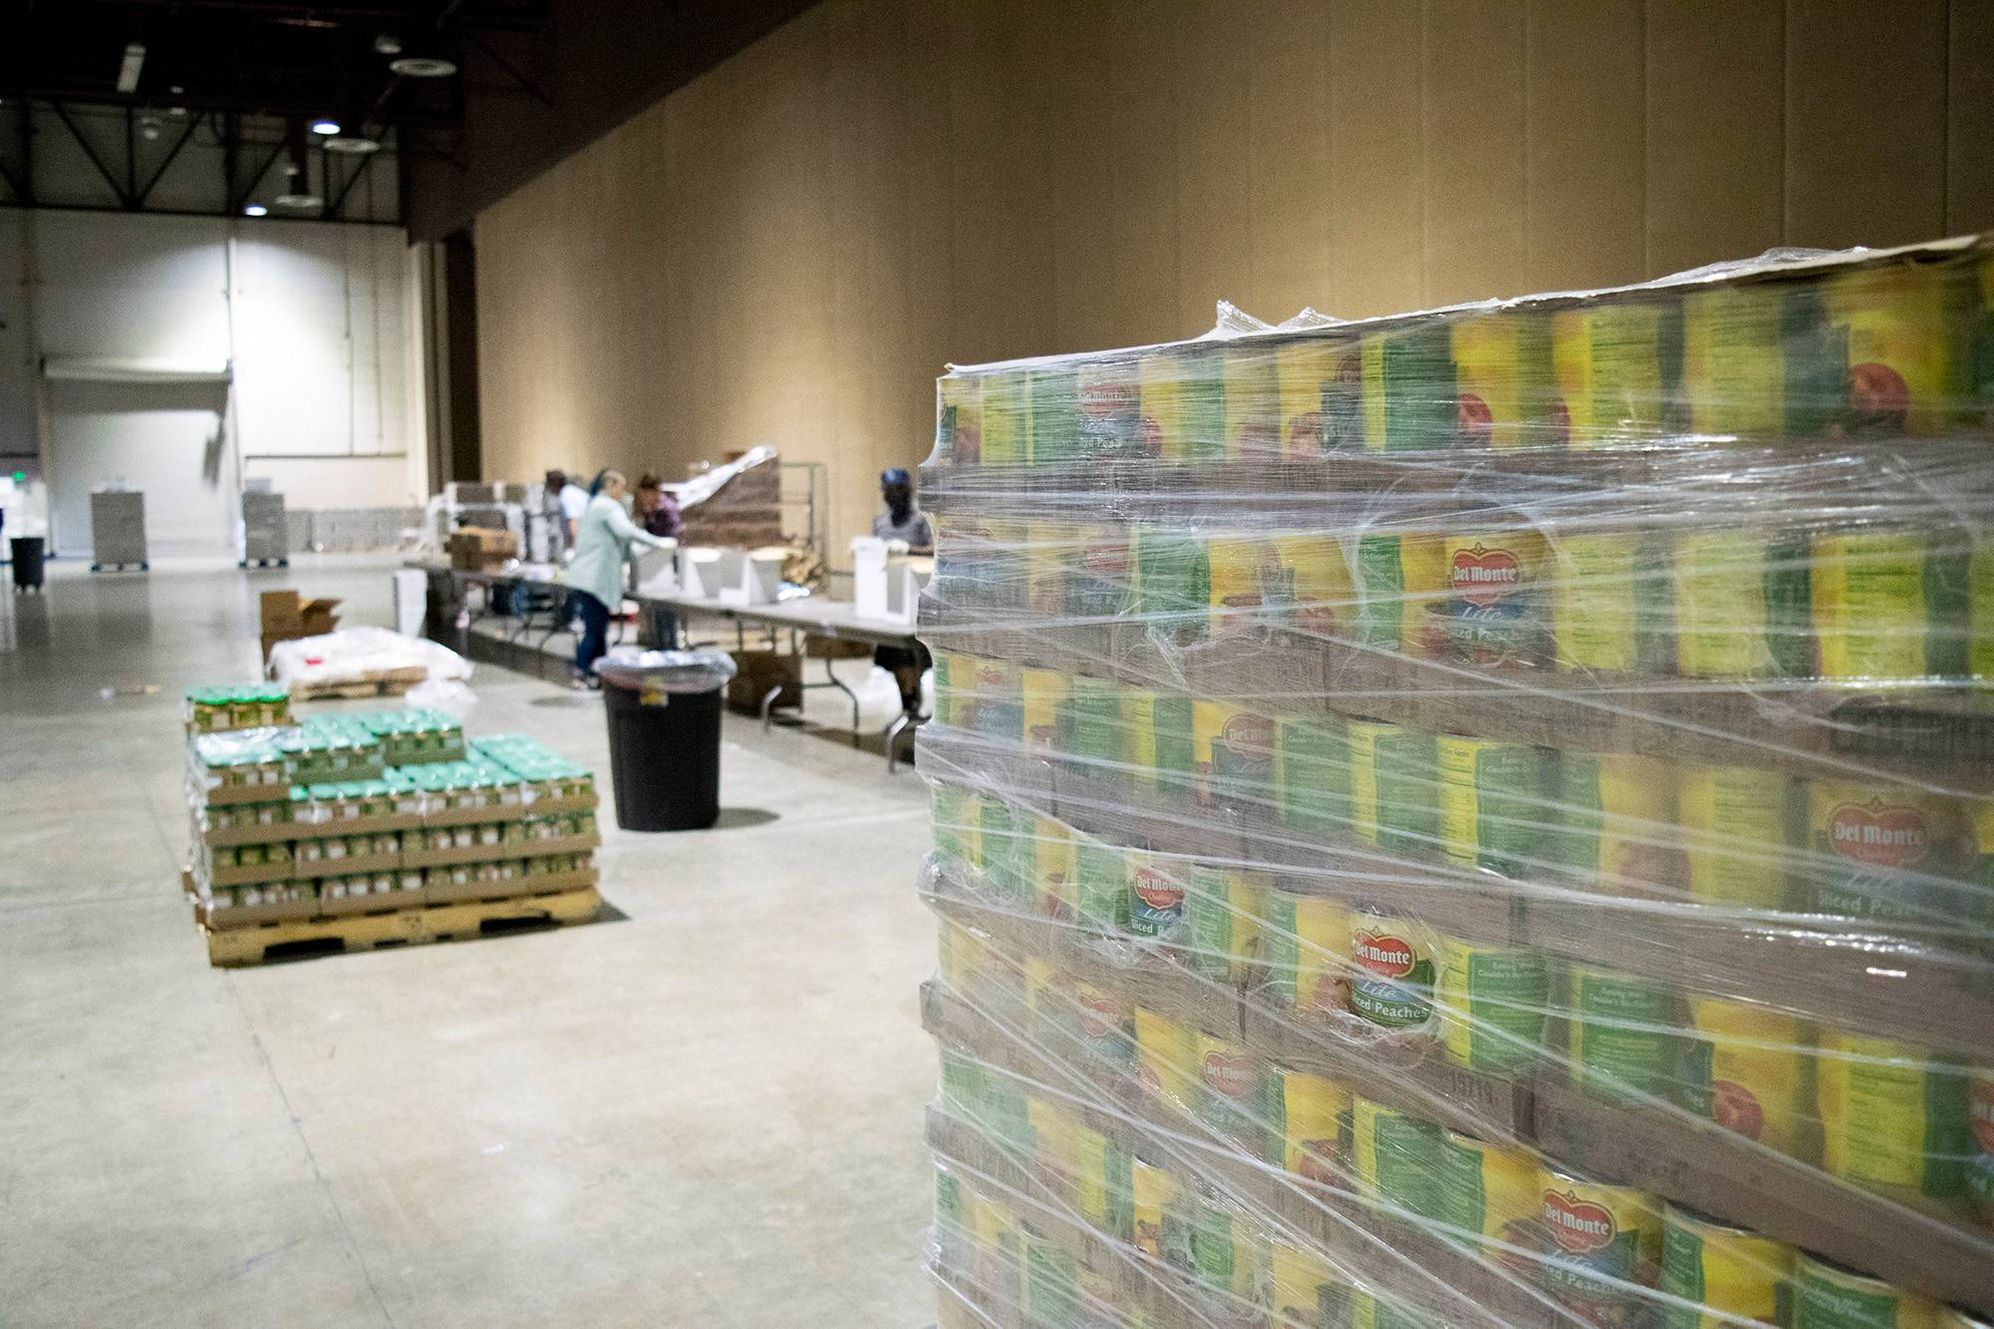 Photo of a pallet of canned food inside a warehouse. Rewire PBS Our Future